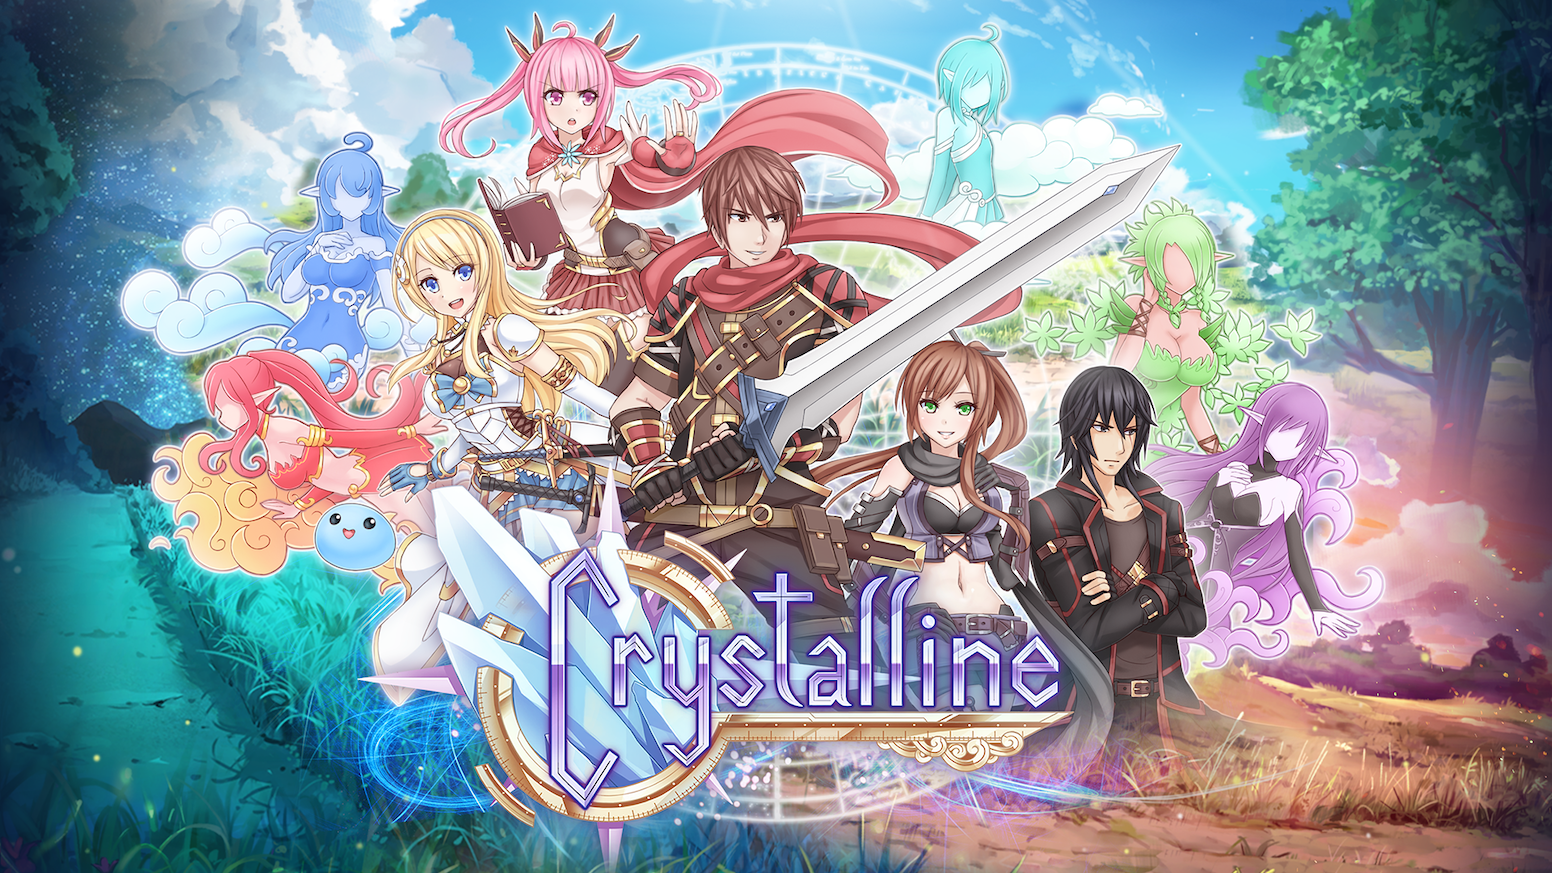 A choice-driven, fantasy adventure visual novel featuring full voice-over and an intricate romance system!